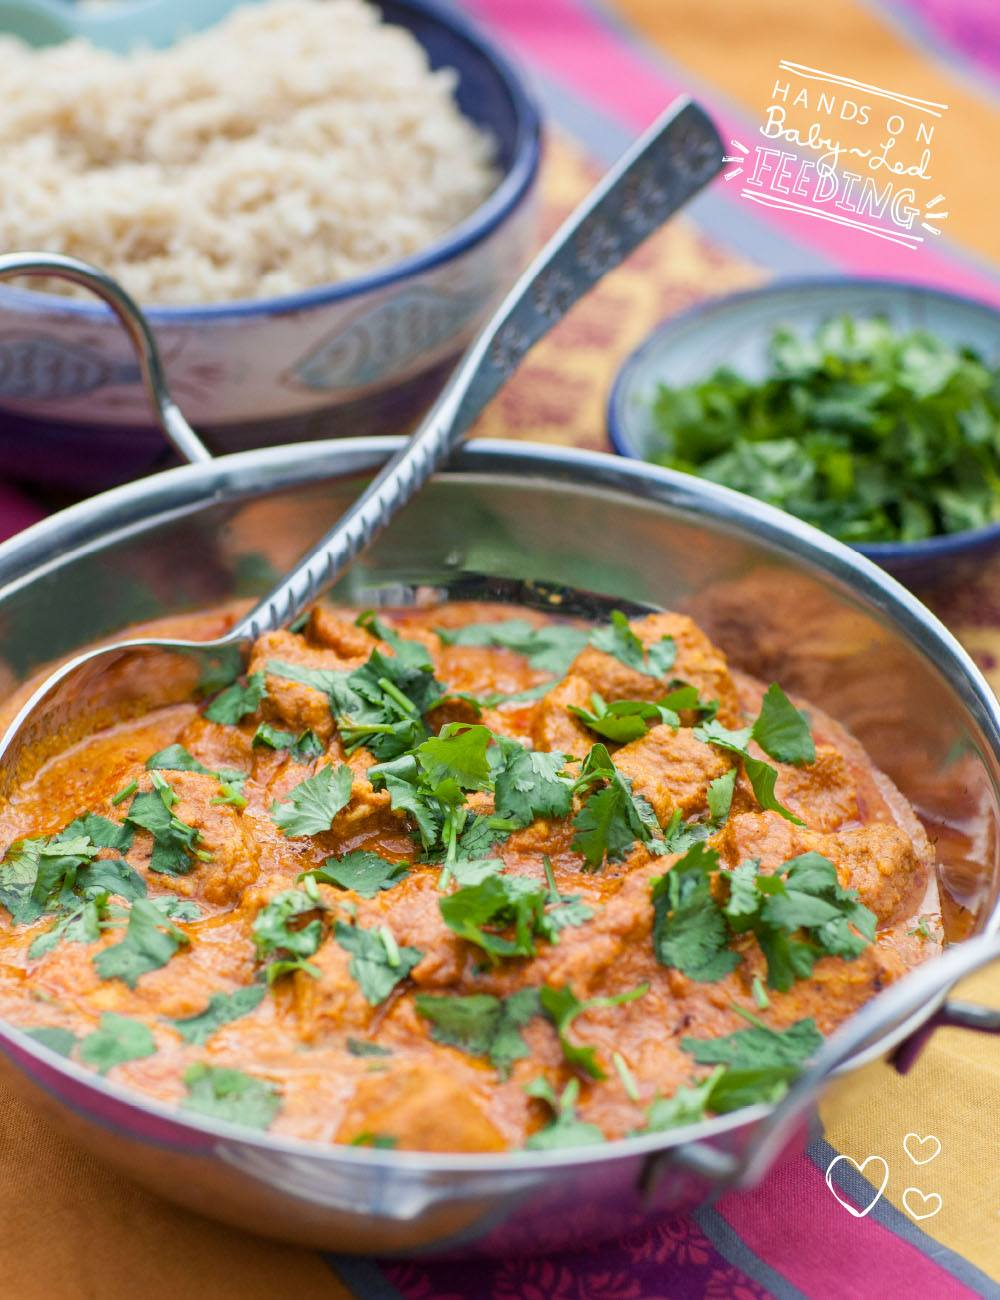 Baby Led Feeding Healthy Chicken Tikka Masala Currys for Babies. Homemade Baby led weaning Recipes Aileen Cox Blundell.